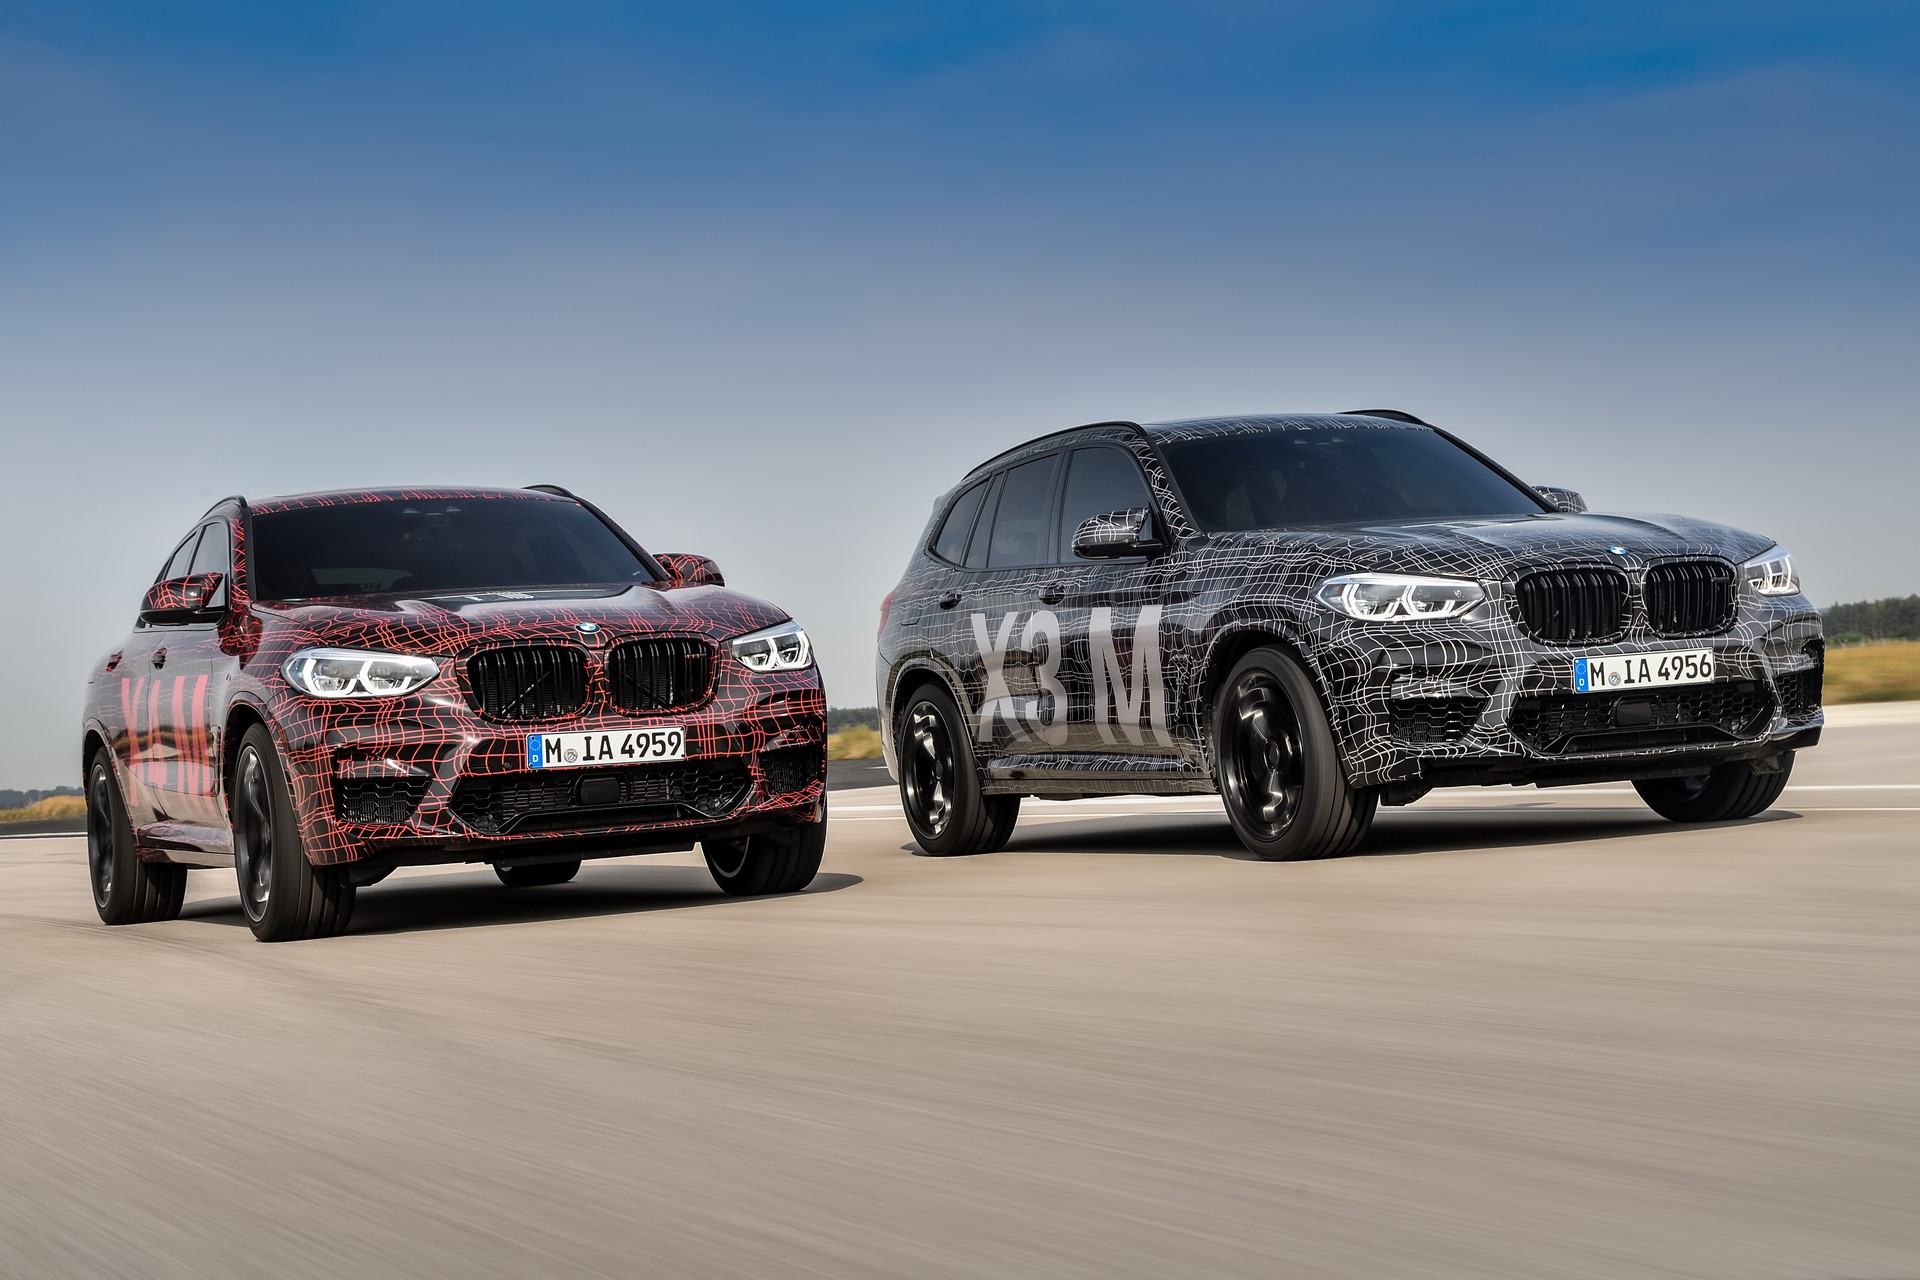 BMW X3 M and BMW X4 M at Nurburgring (3)